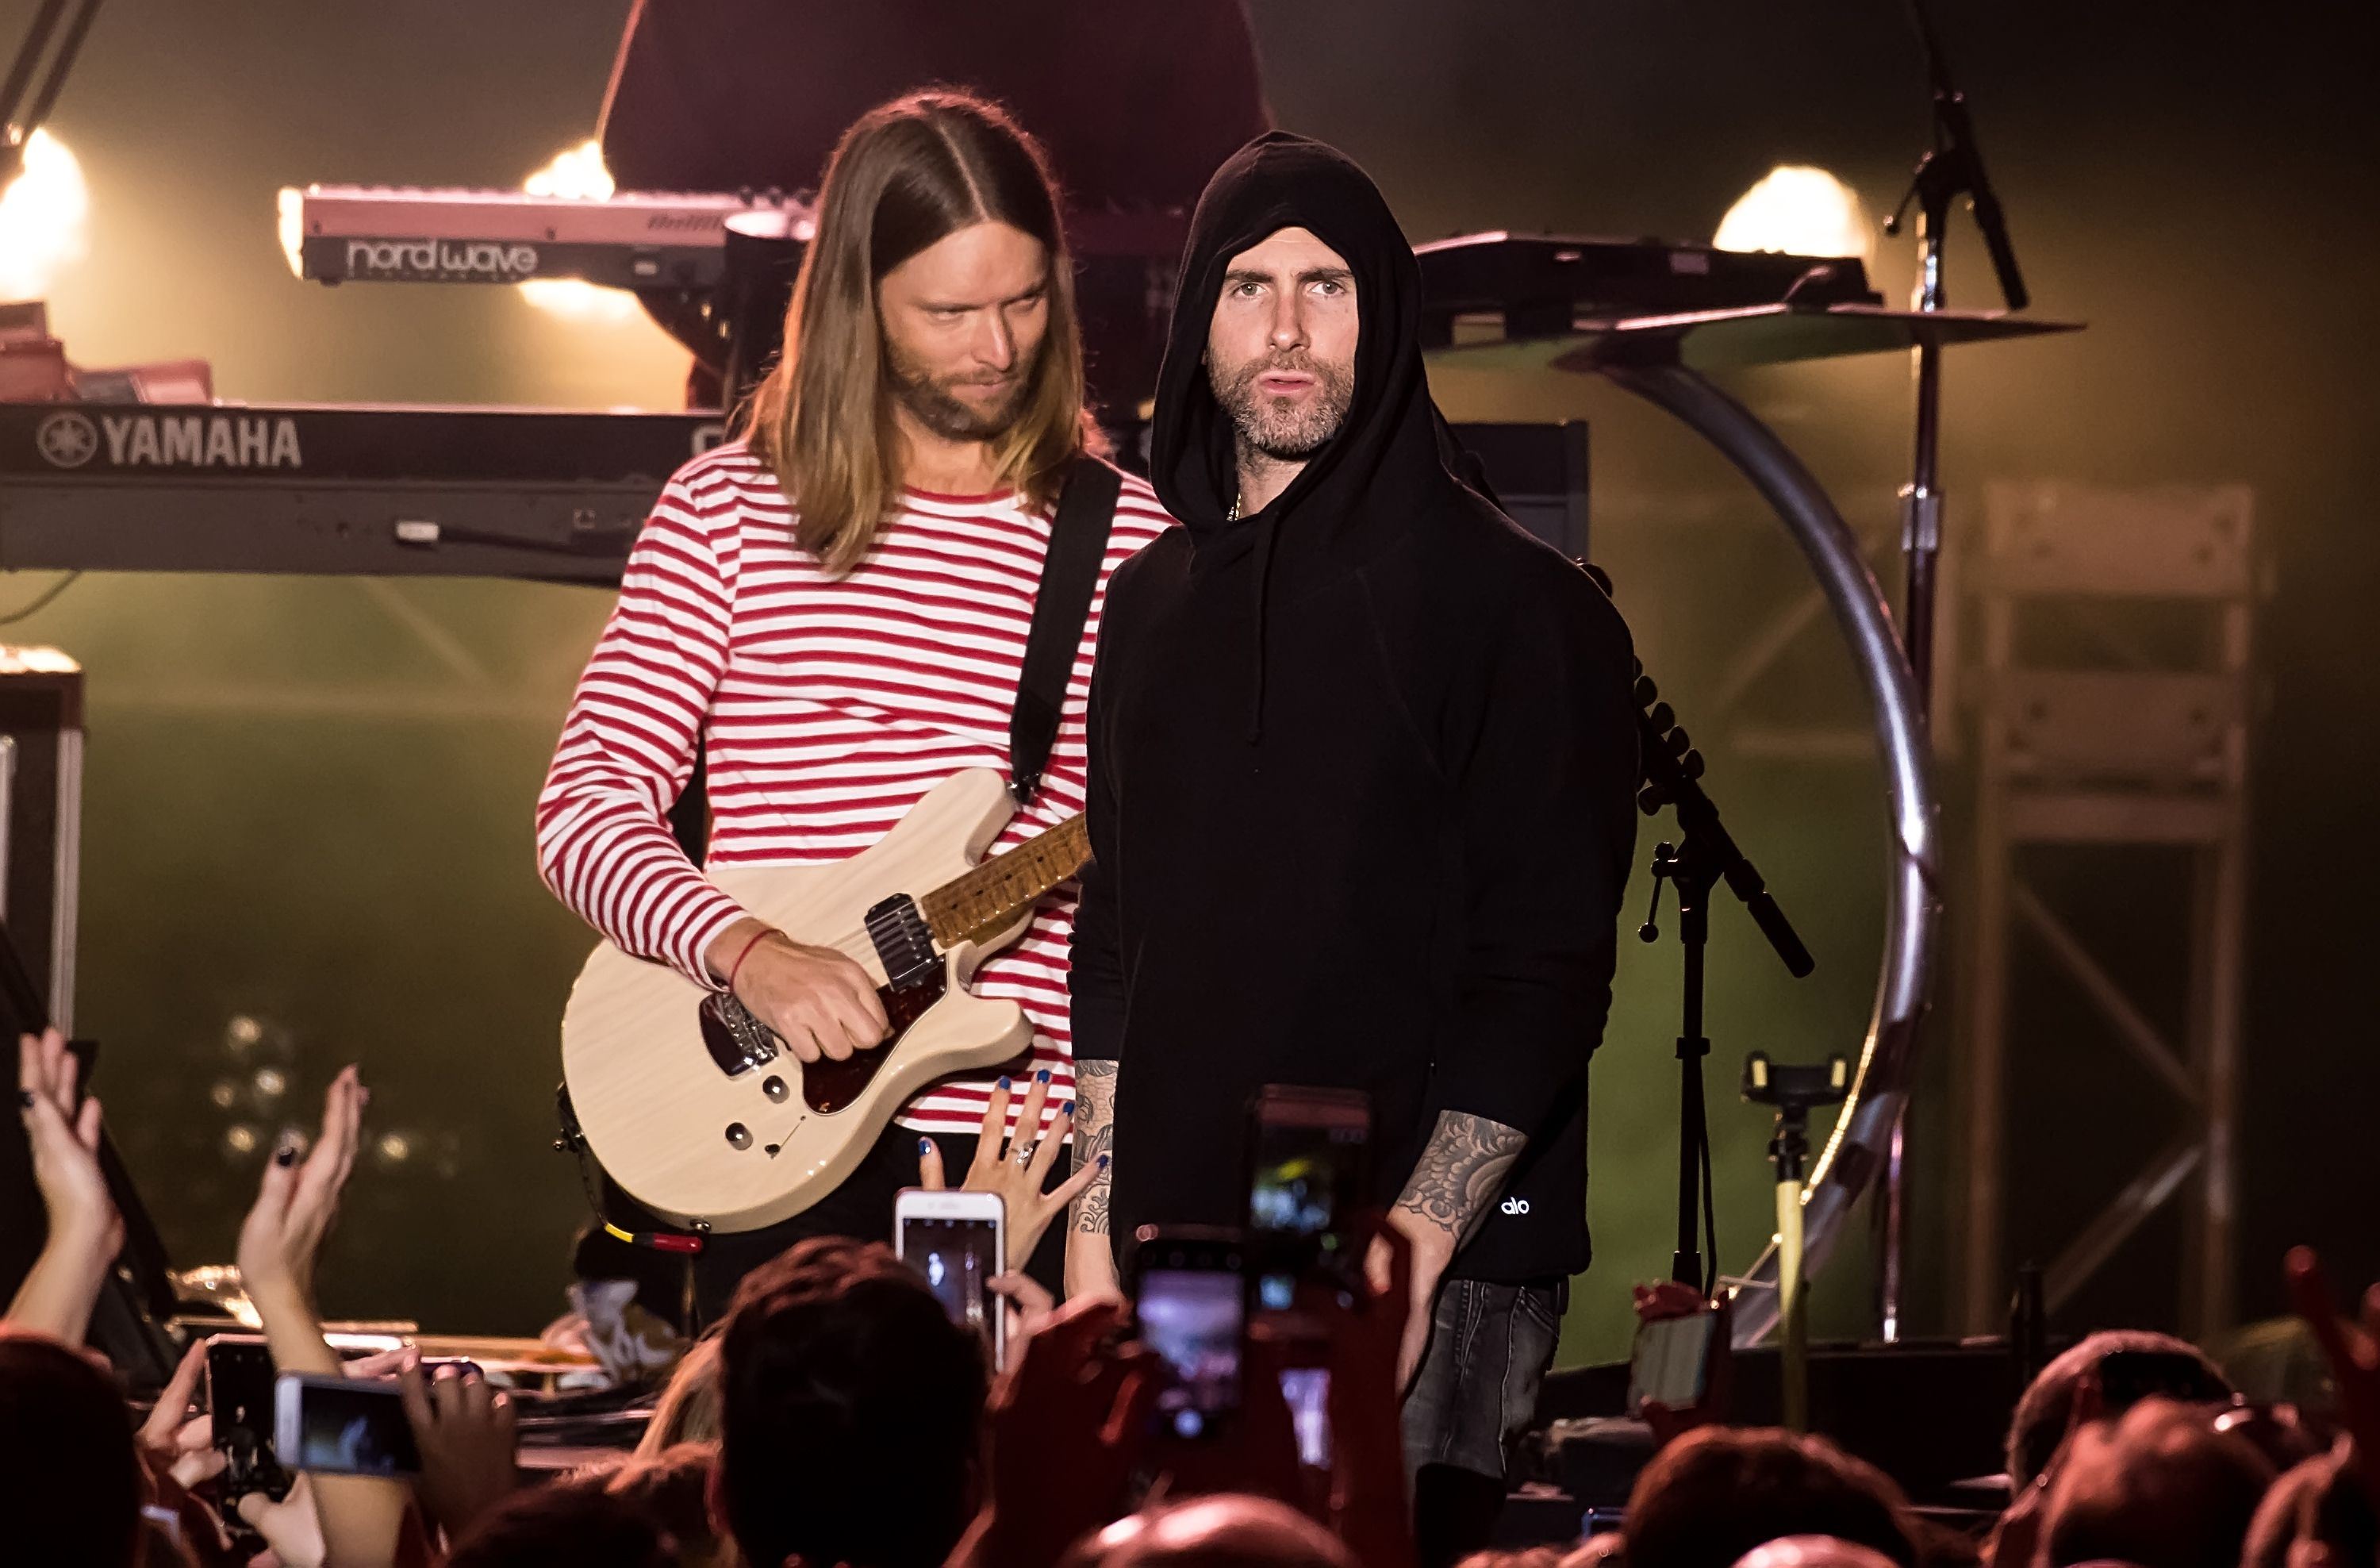 This Is Probably a Bad Sign For Maroon 5's Super Bowl Halftime Show